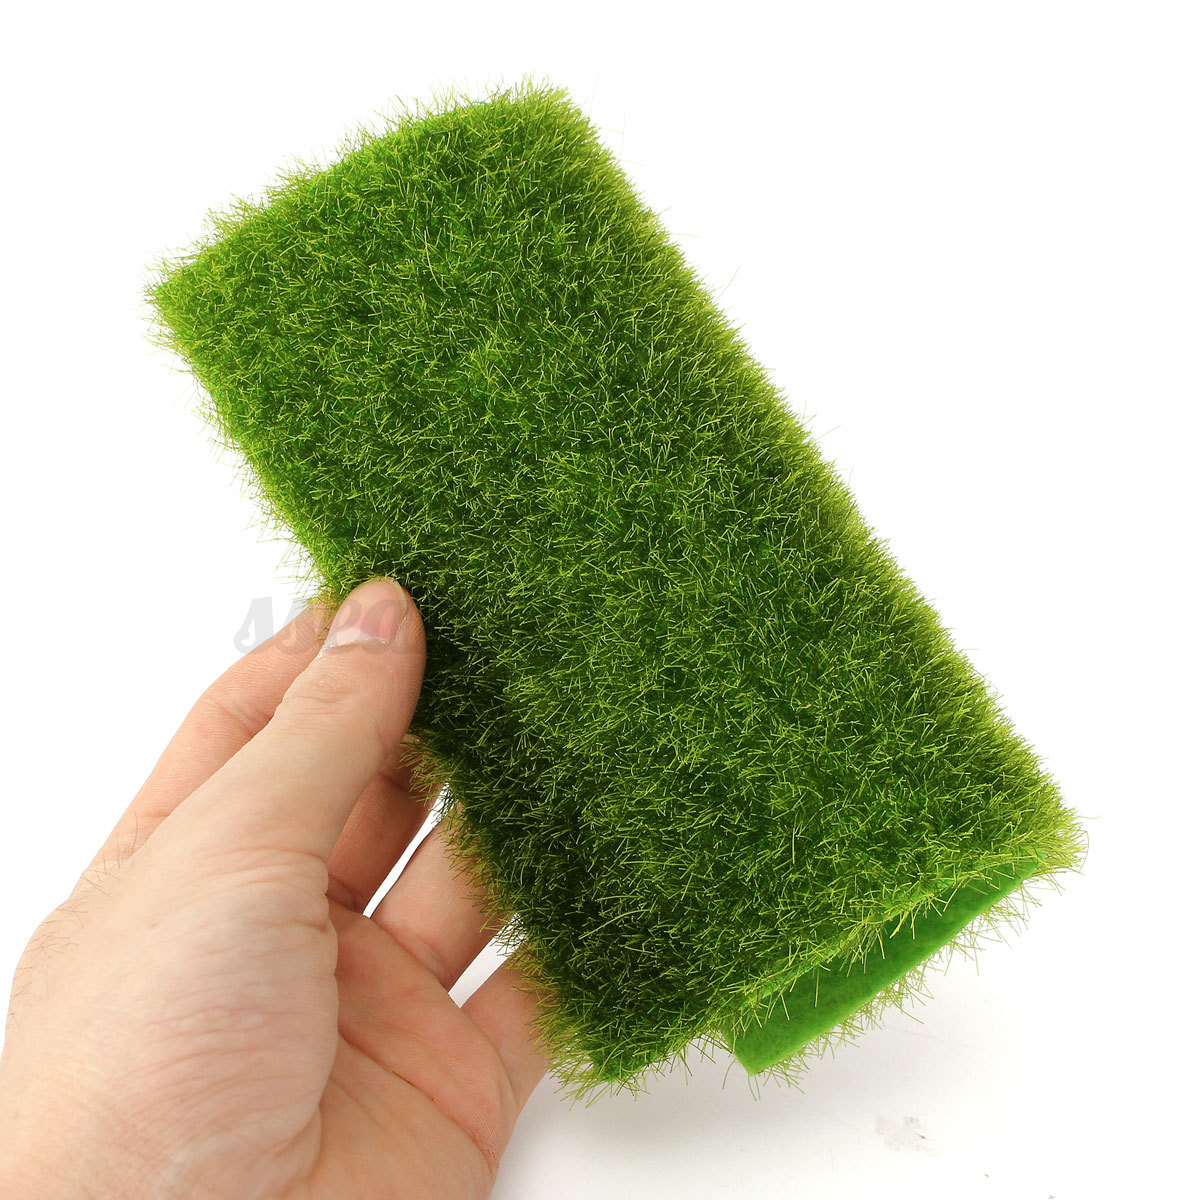 MOSS GREEN ARTIFICIAL Grass Synthetic Lawn Landscape Fairy